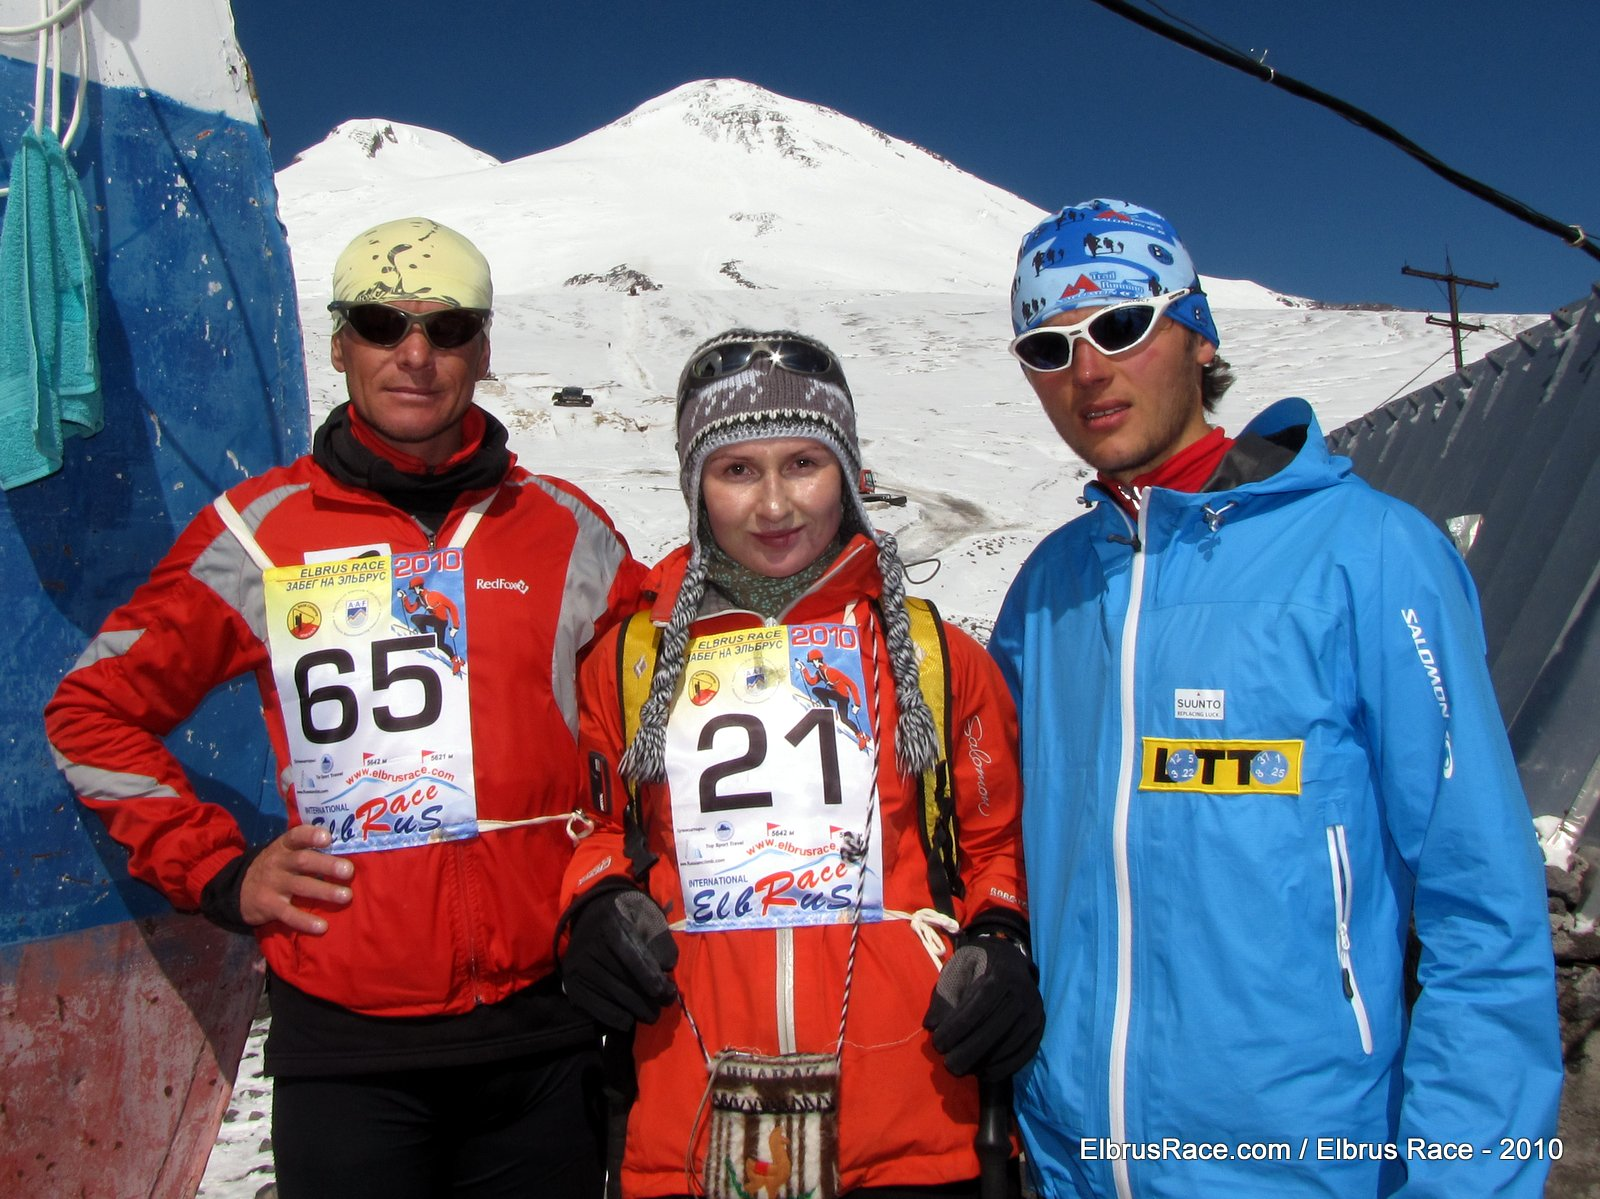 elbrus-race-2010 winners big